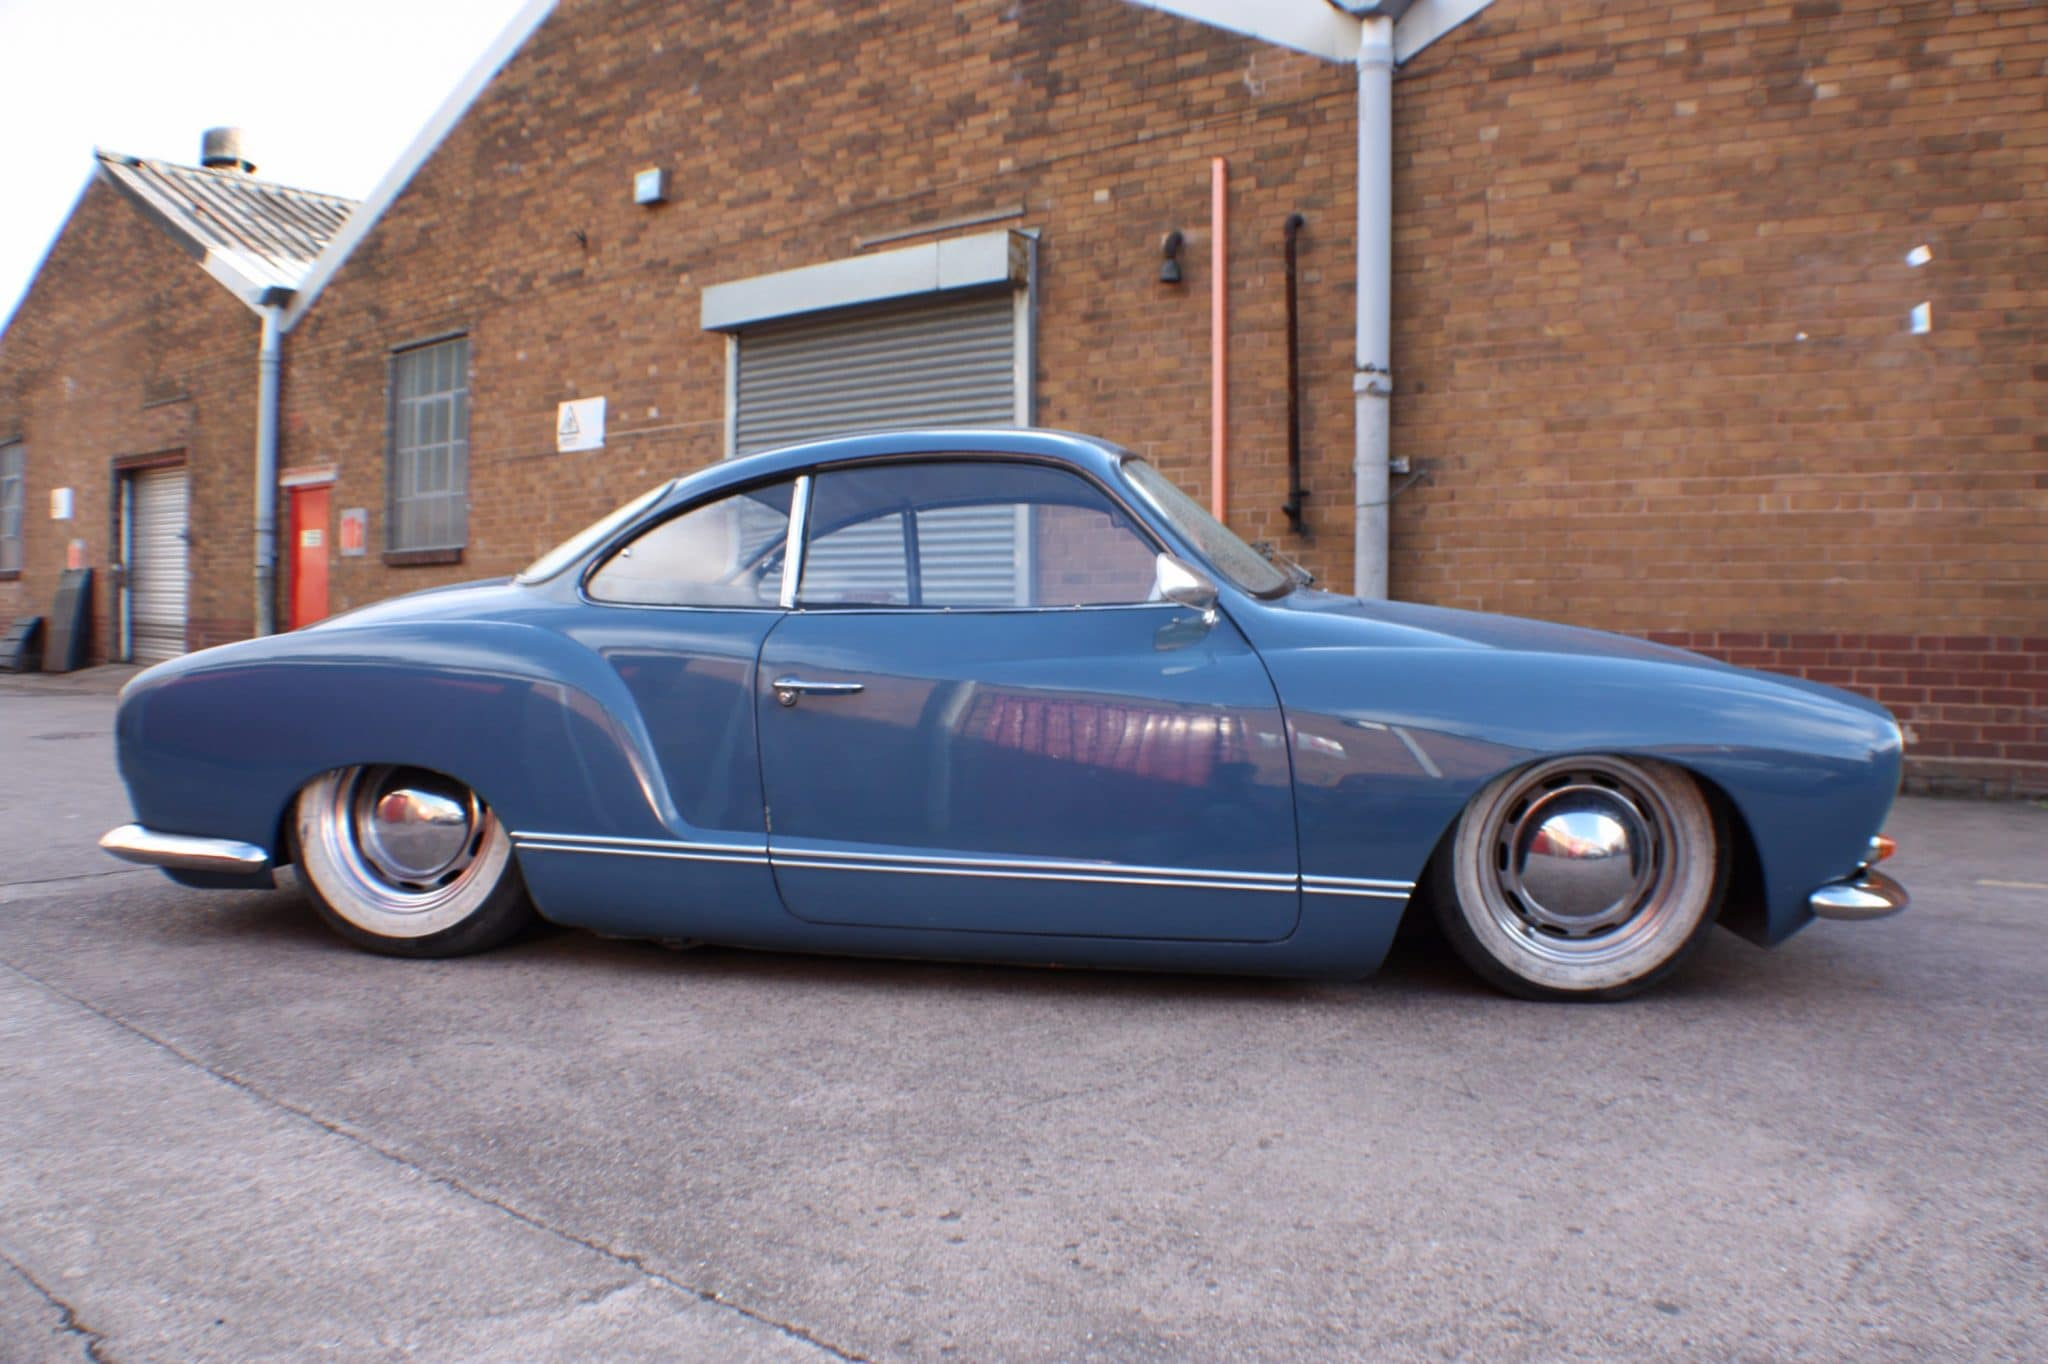 karmann ghia side view - blue